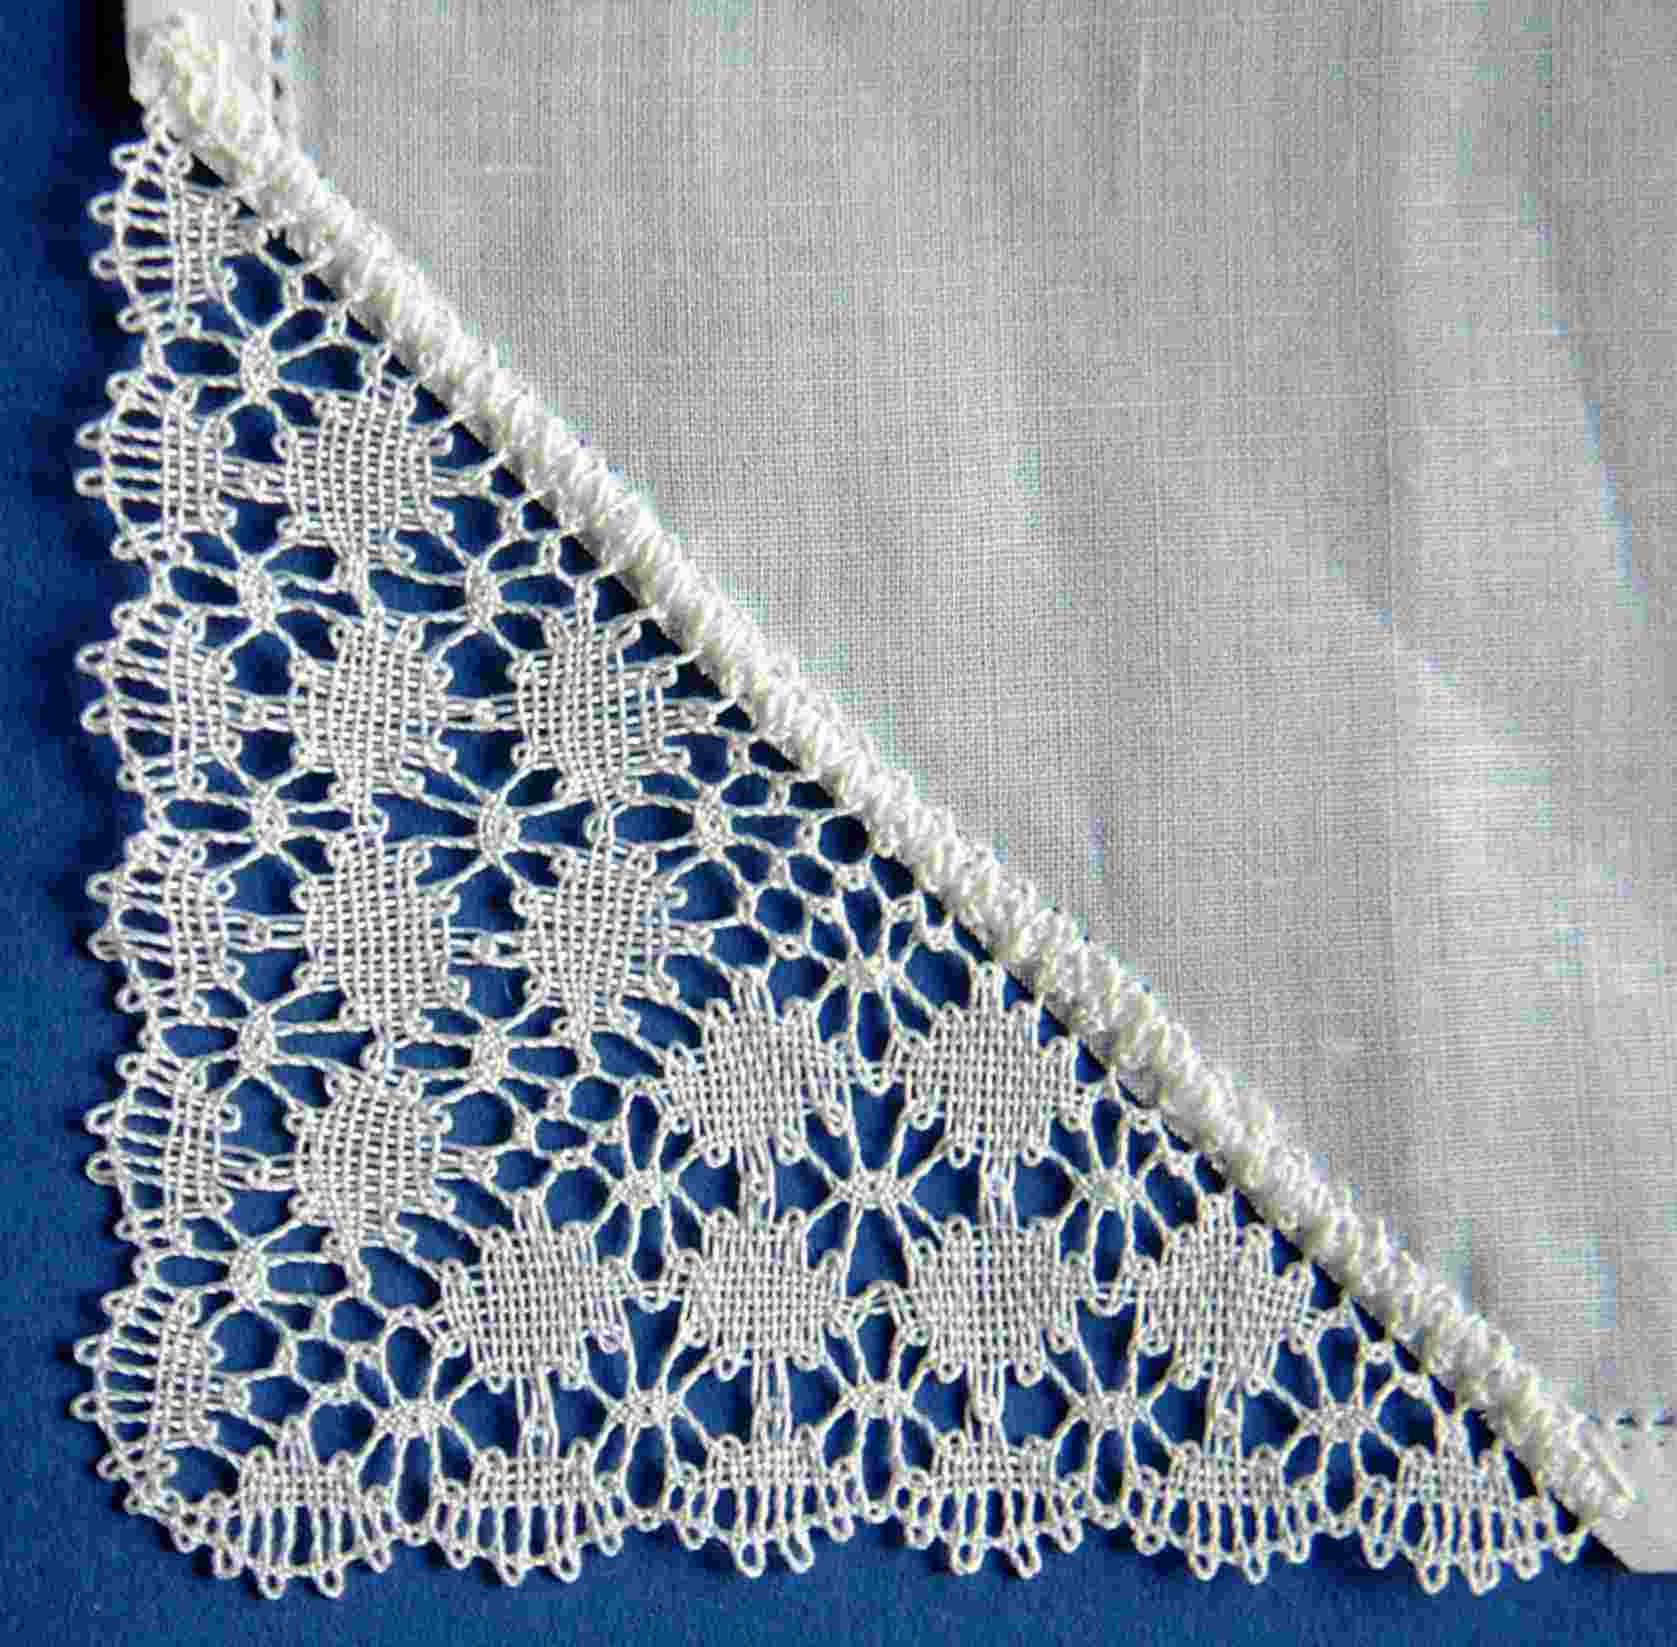 Handkerchief corner with cloth stitch fans